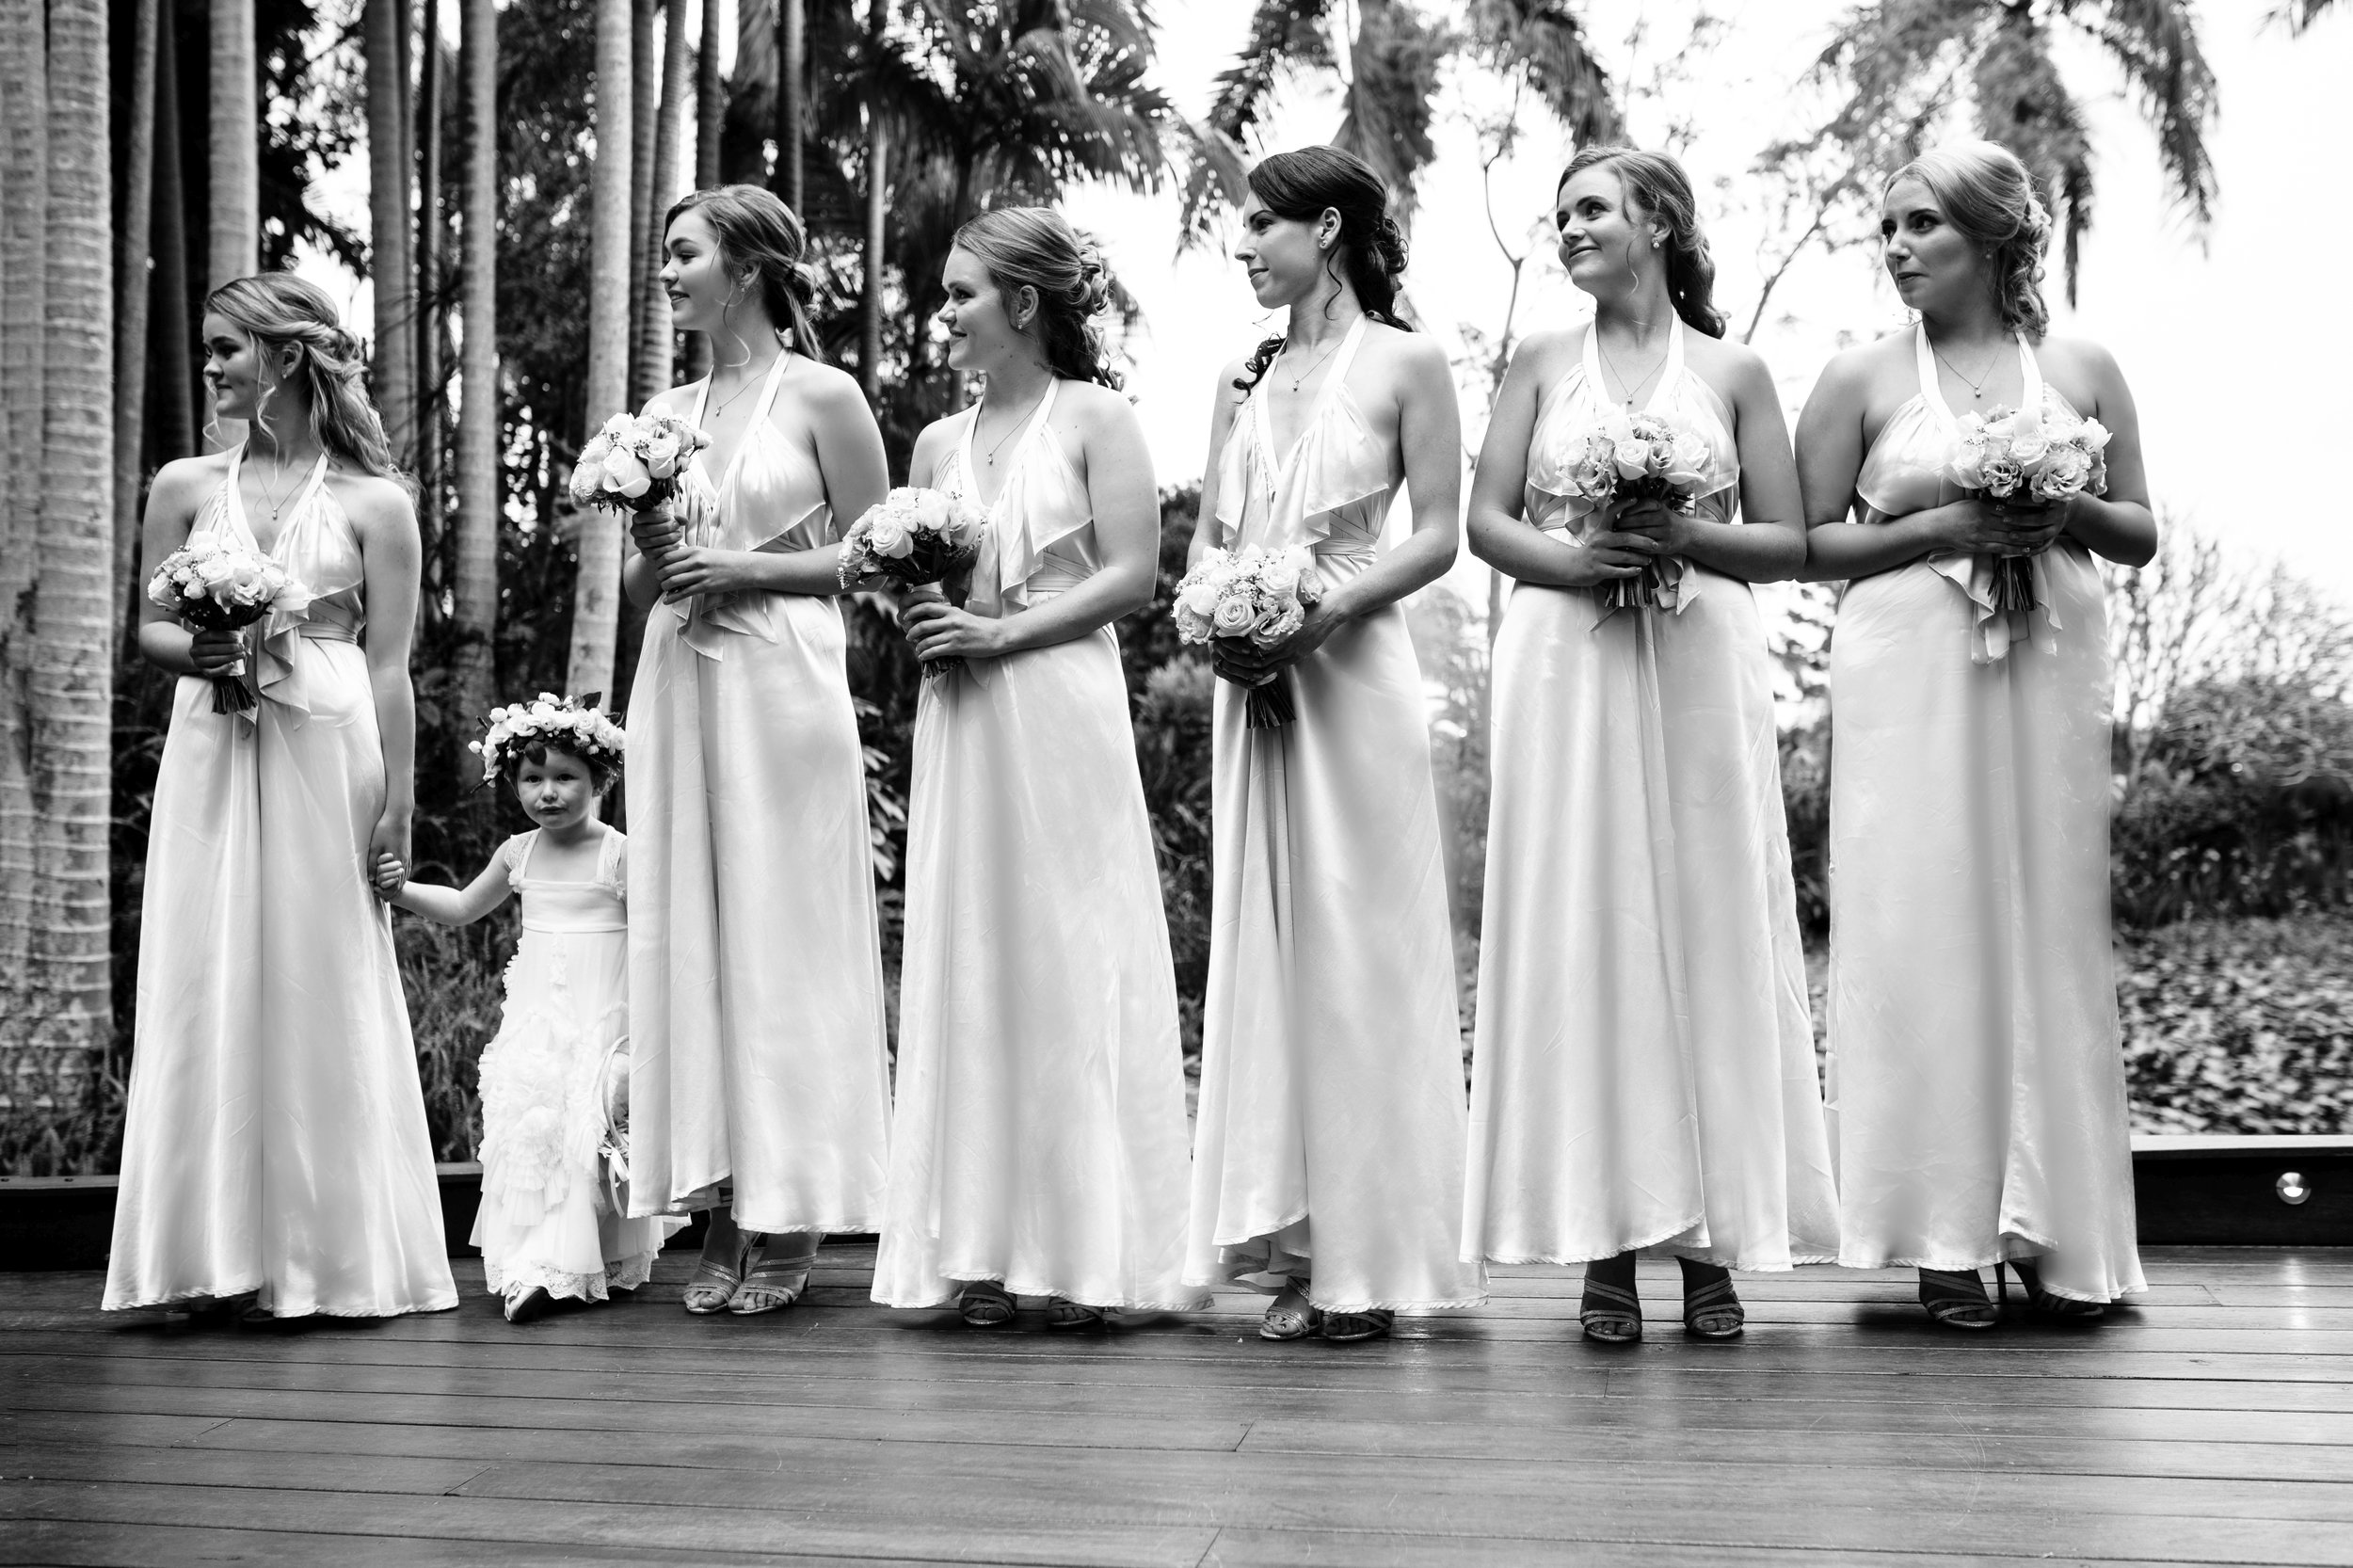 Bridesmaids and flower girl stand during ceremony of wedding in Brisbane.